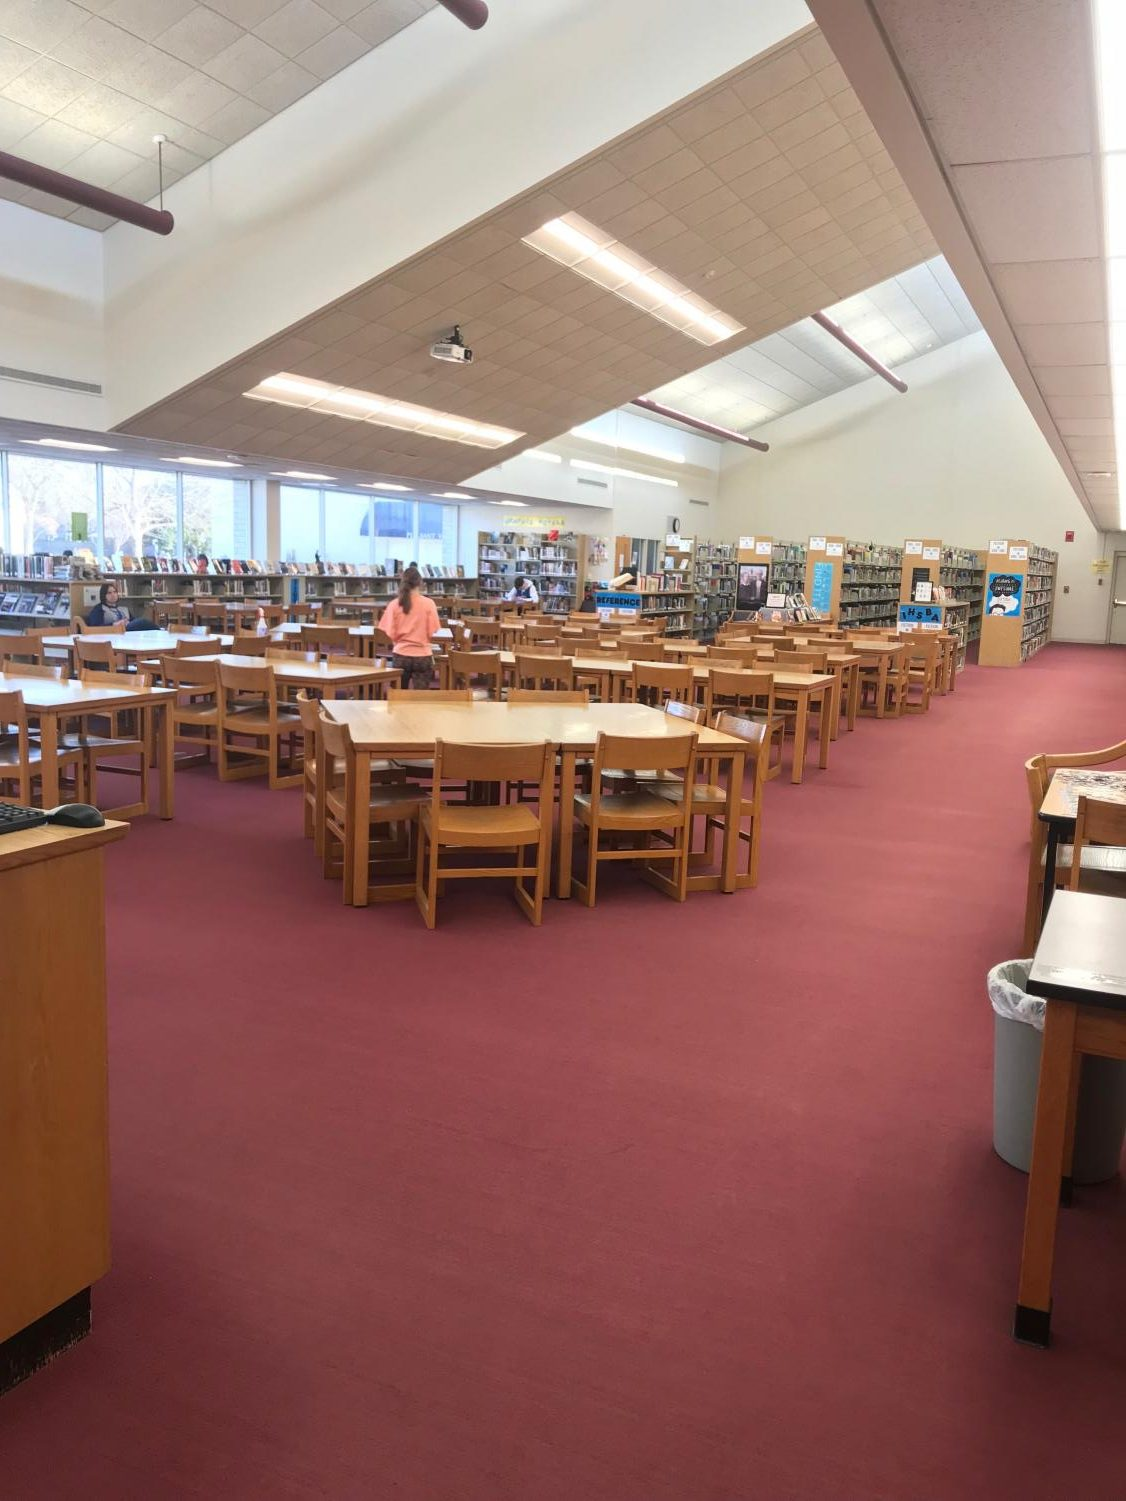 The high school library.